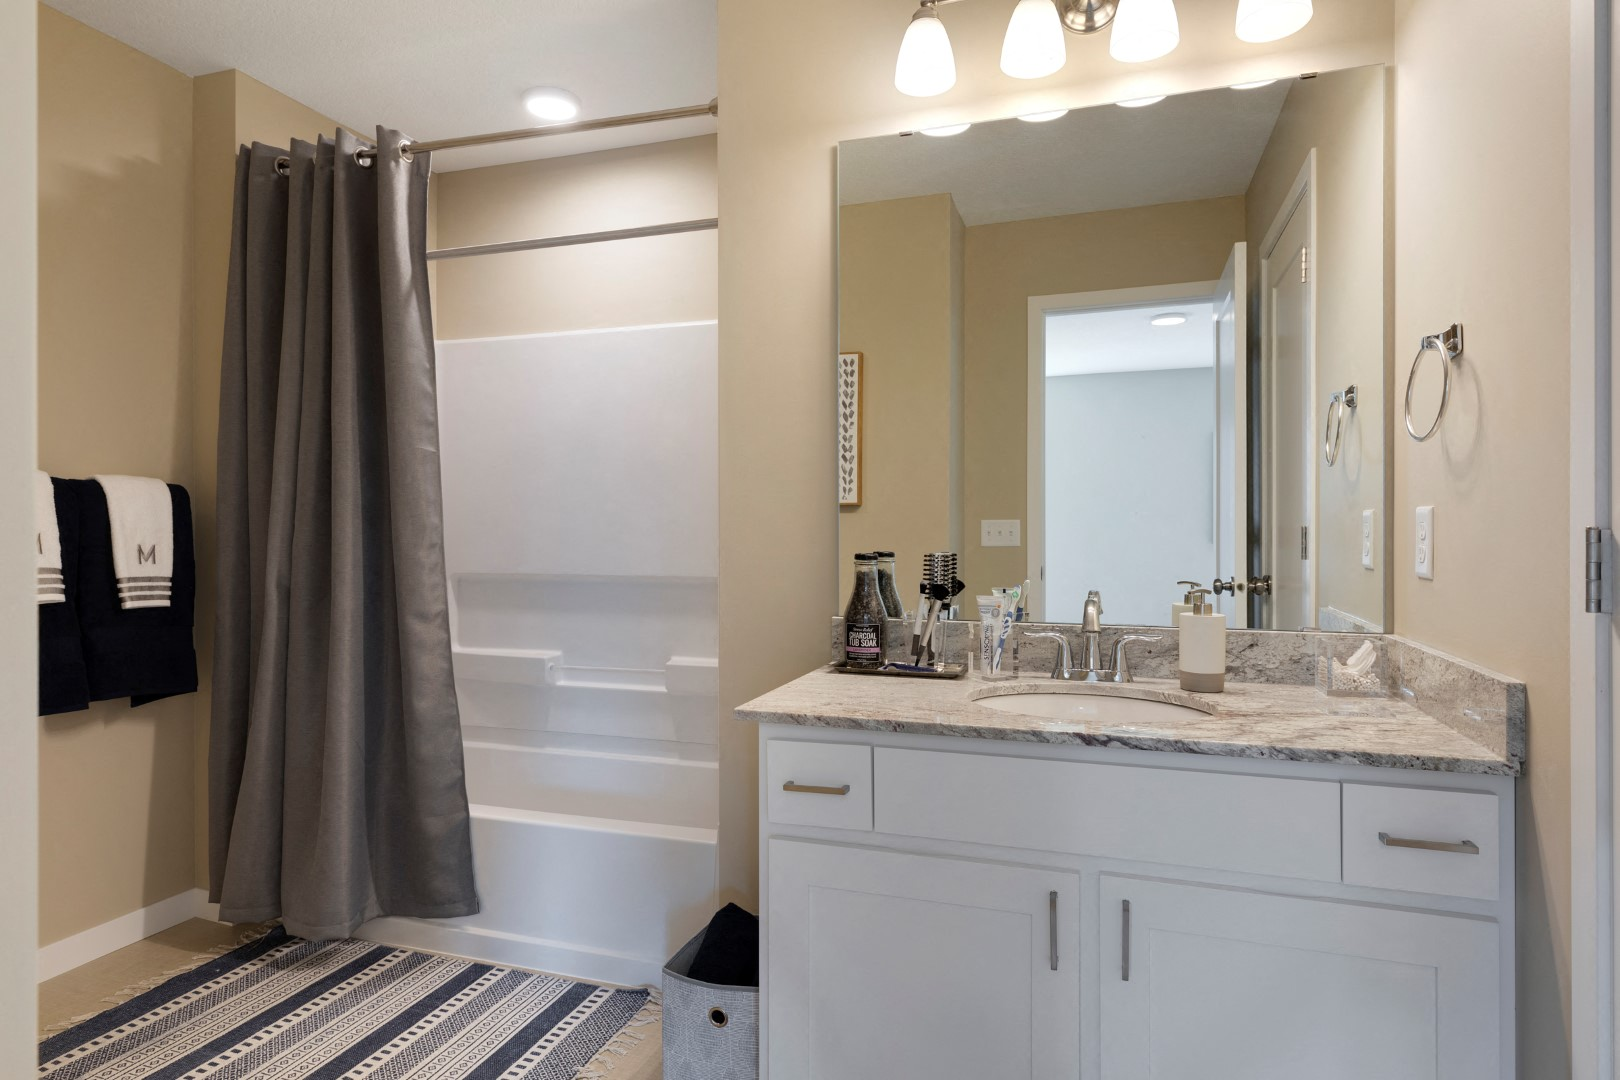 bathroom shower tub and vanity at the liberty apartments in golden valley minnesota